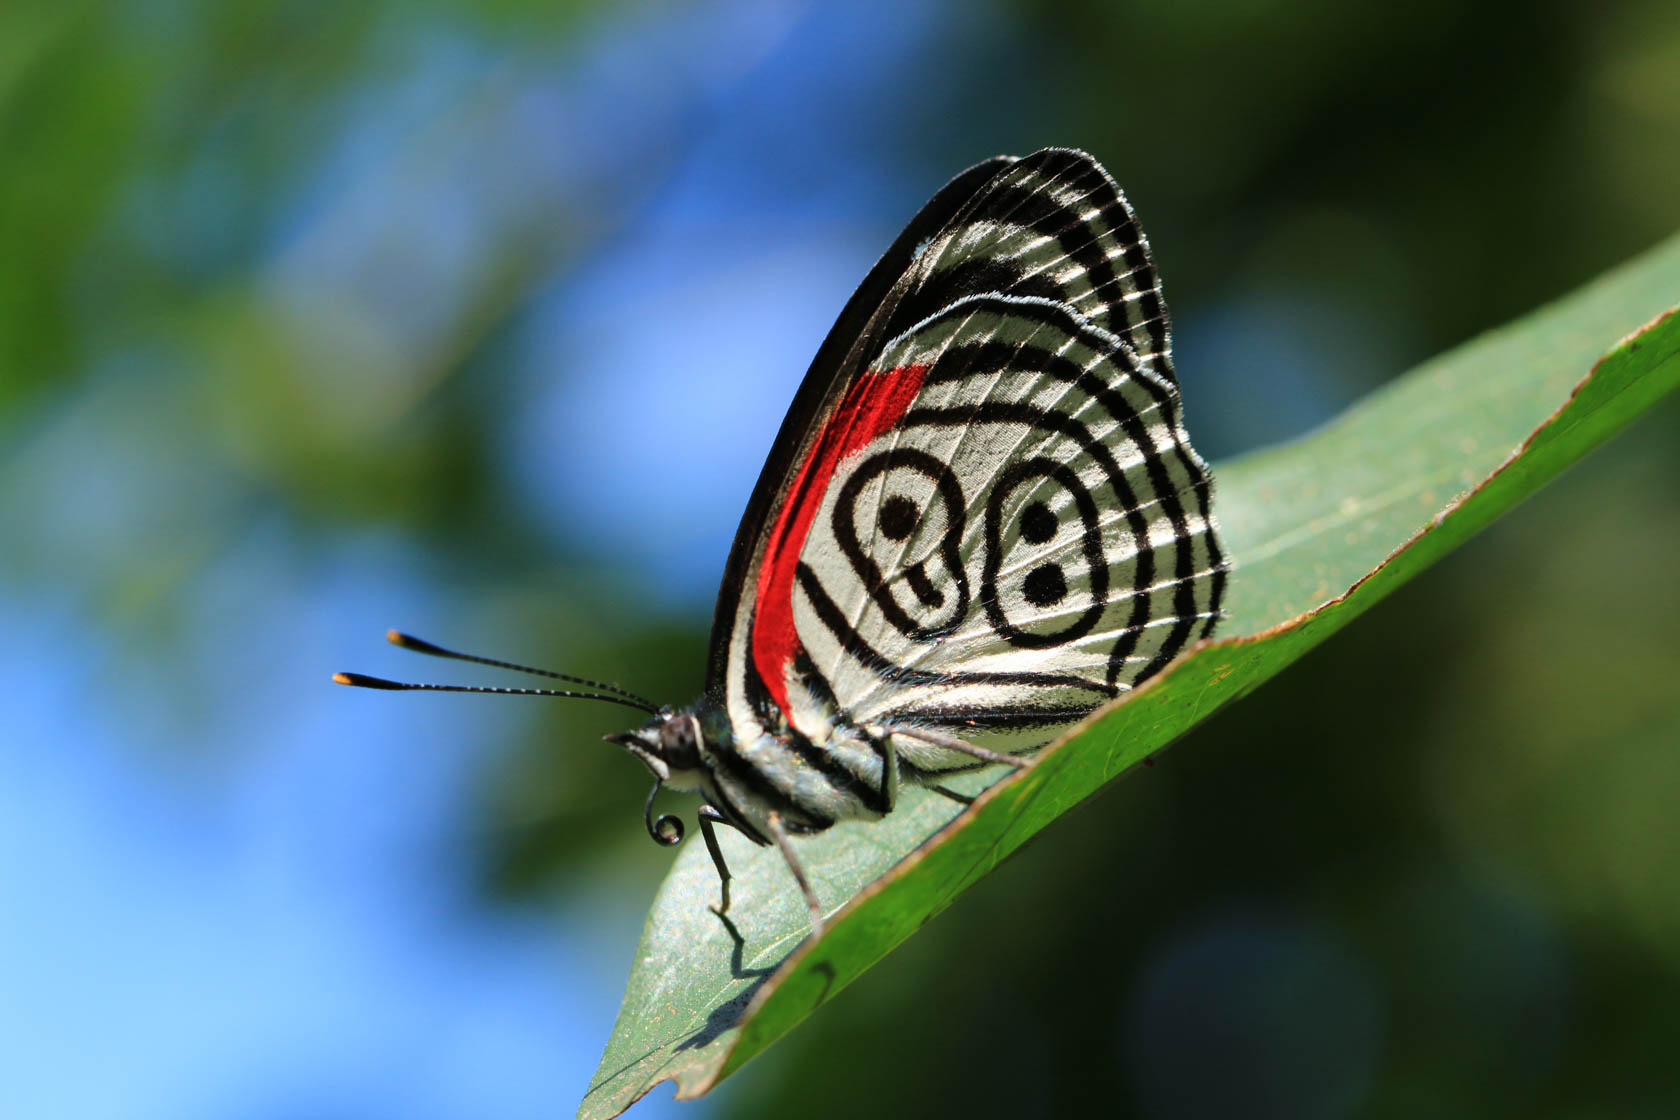 Butterfly close-up taken with Canon EOS 70D DSLR camera